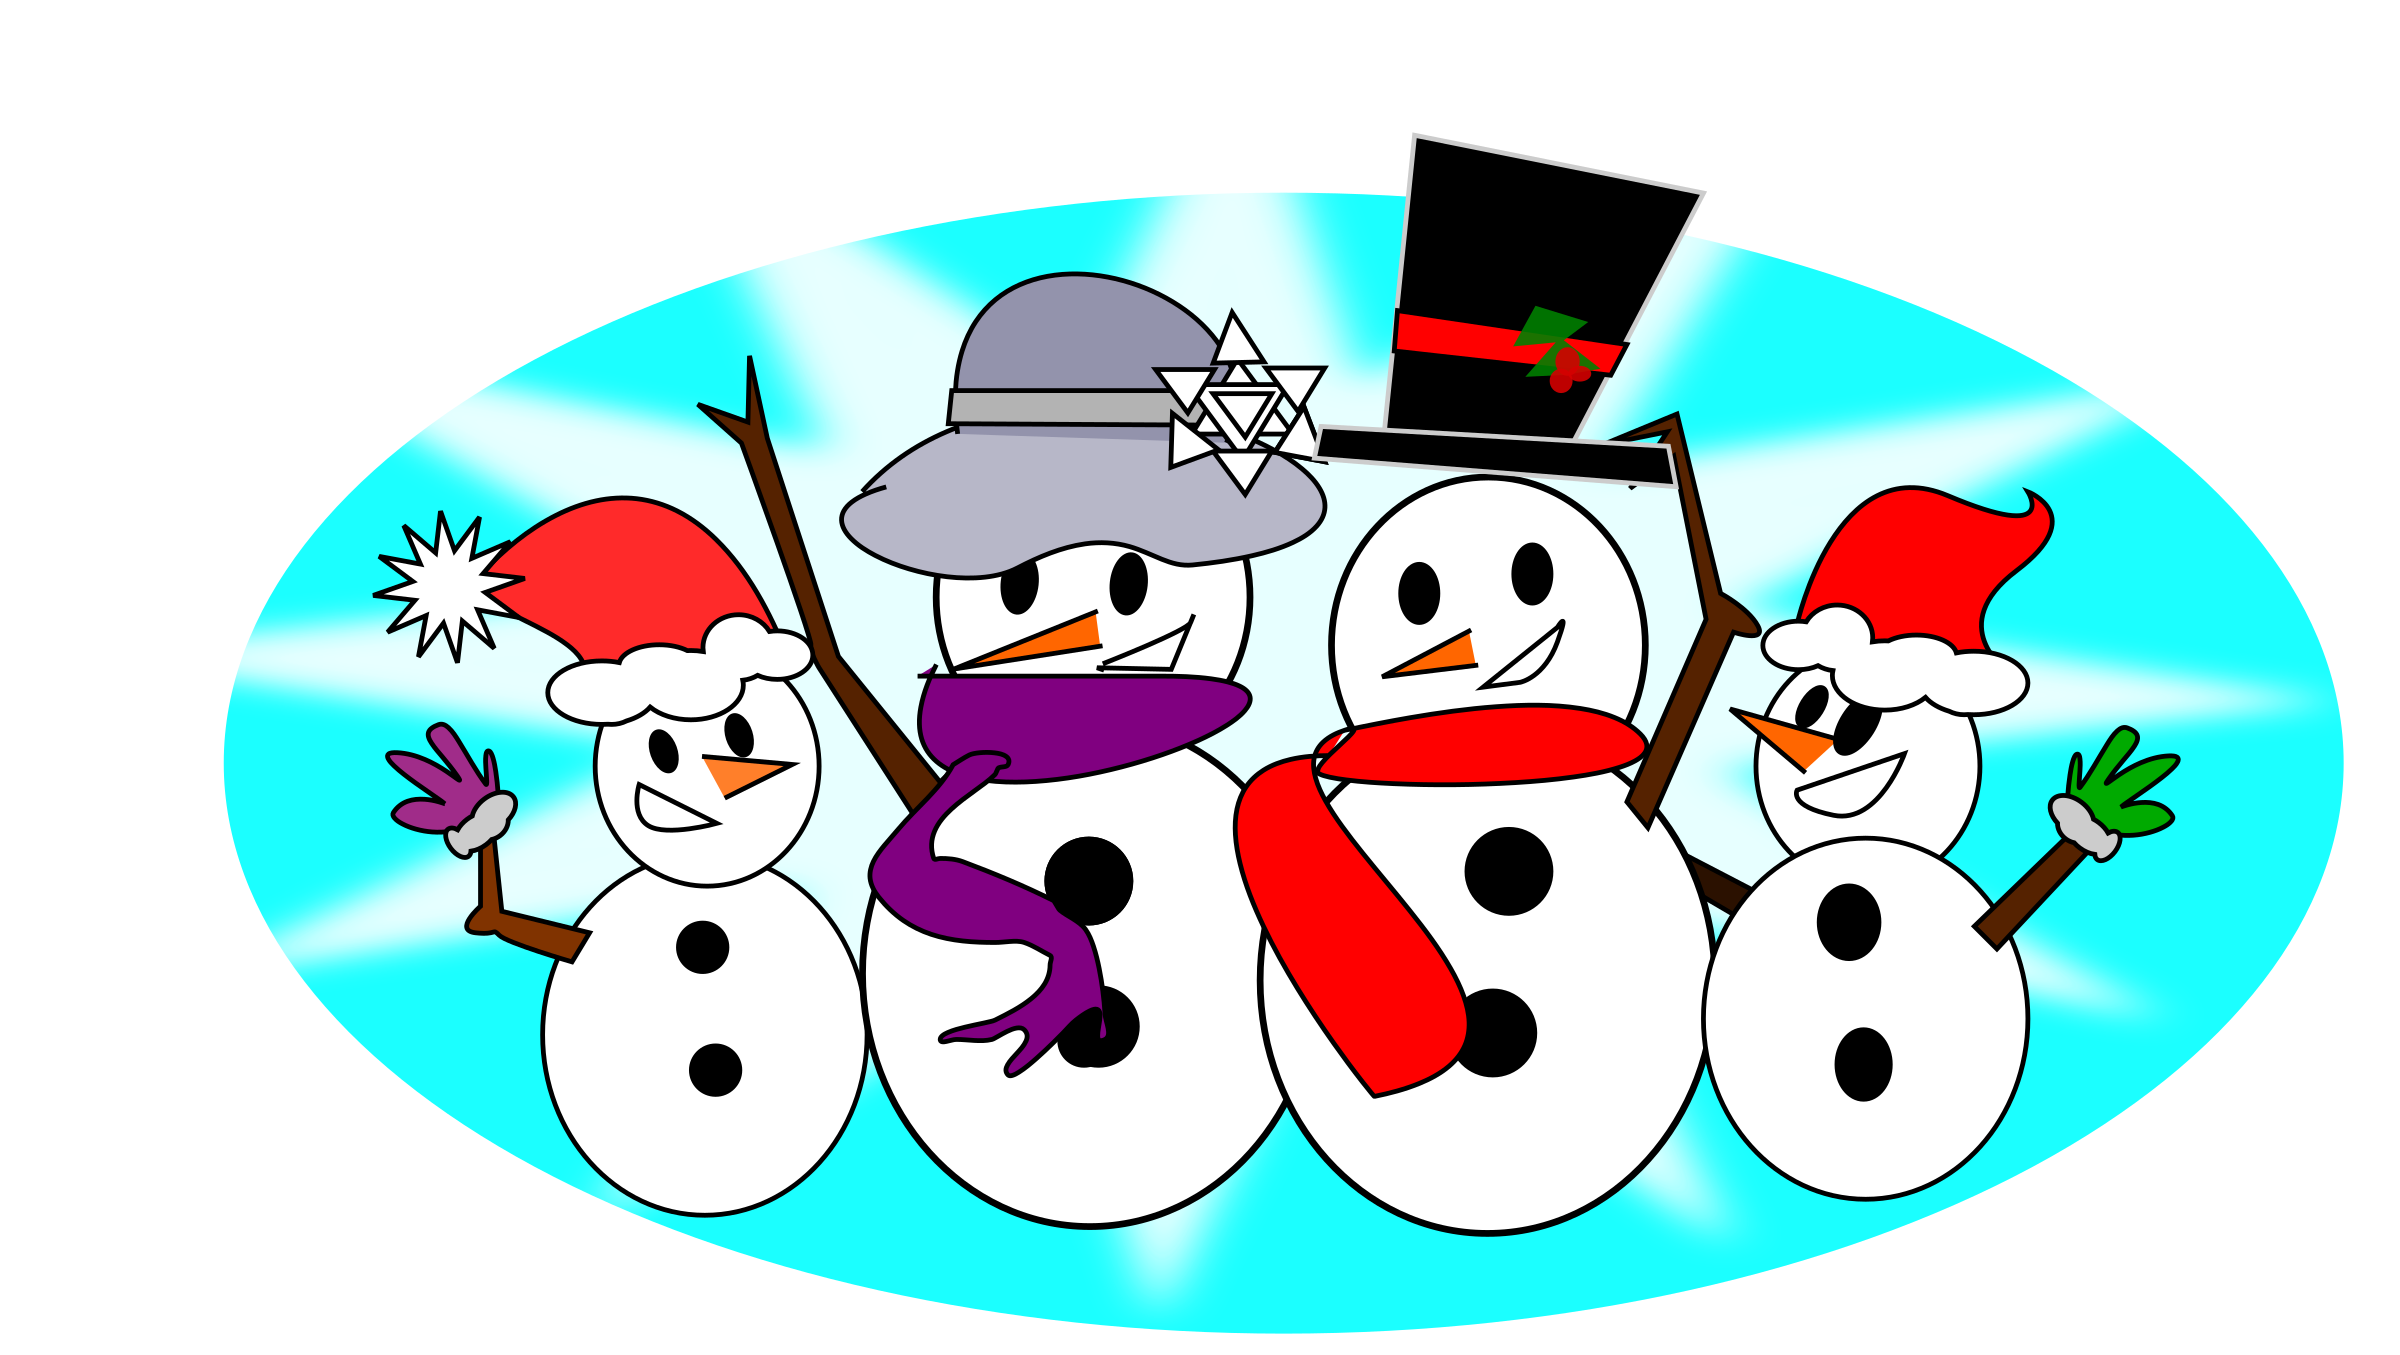 Merry christmas snowman clipart image freeuse library Clipart - Snowman Family image freeuse library